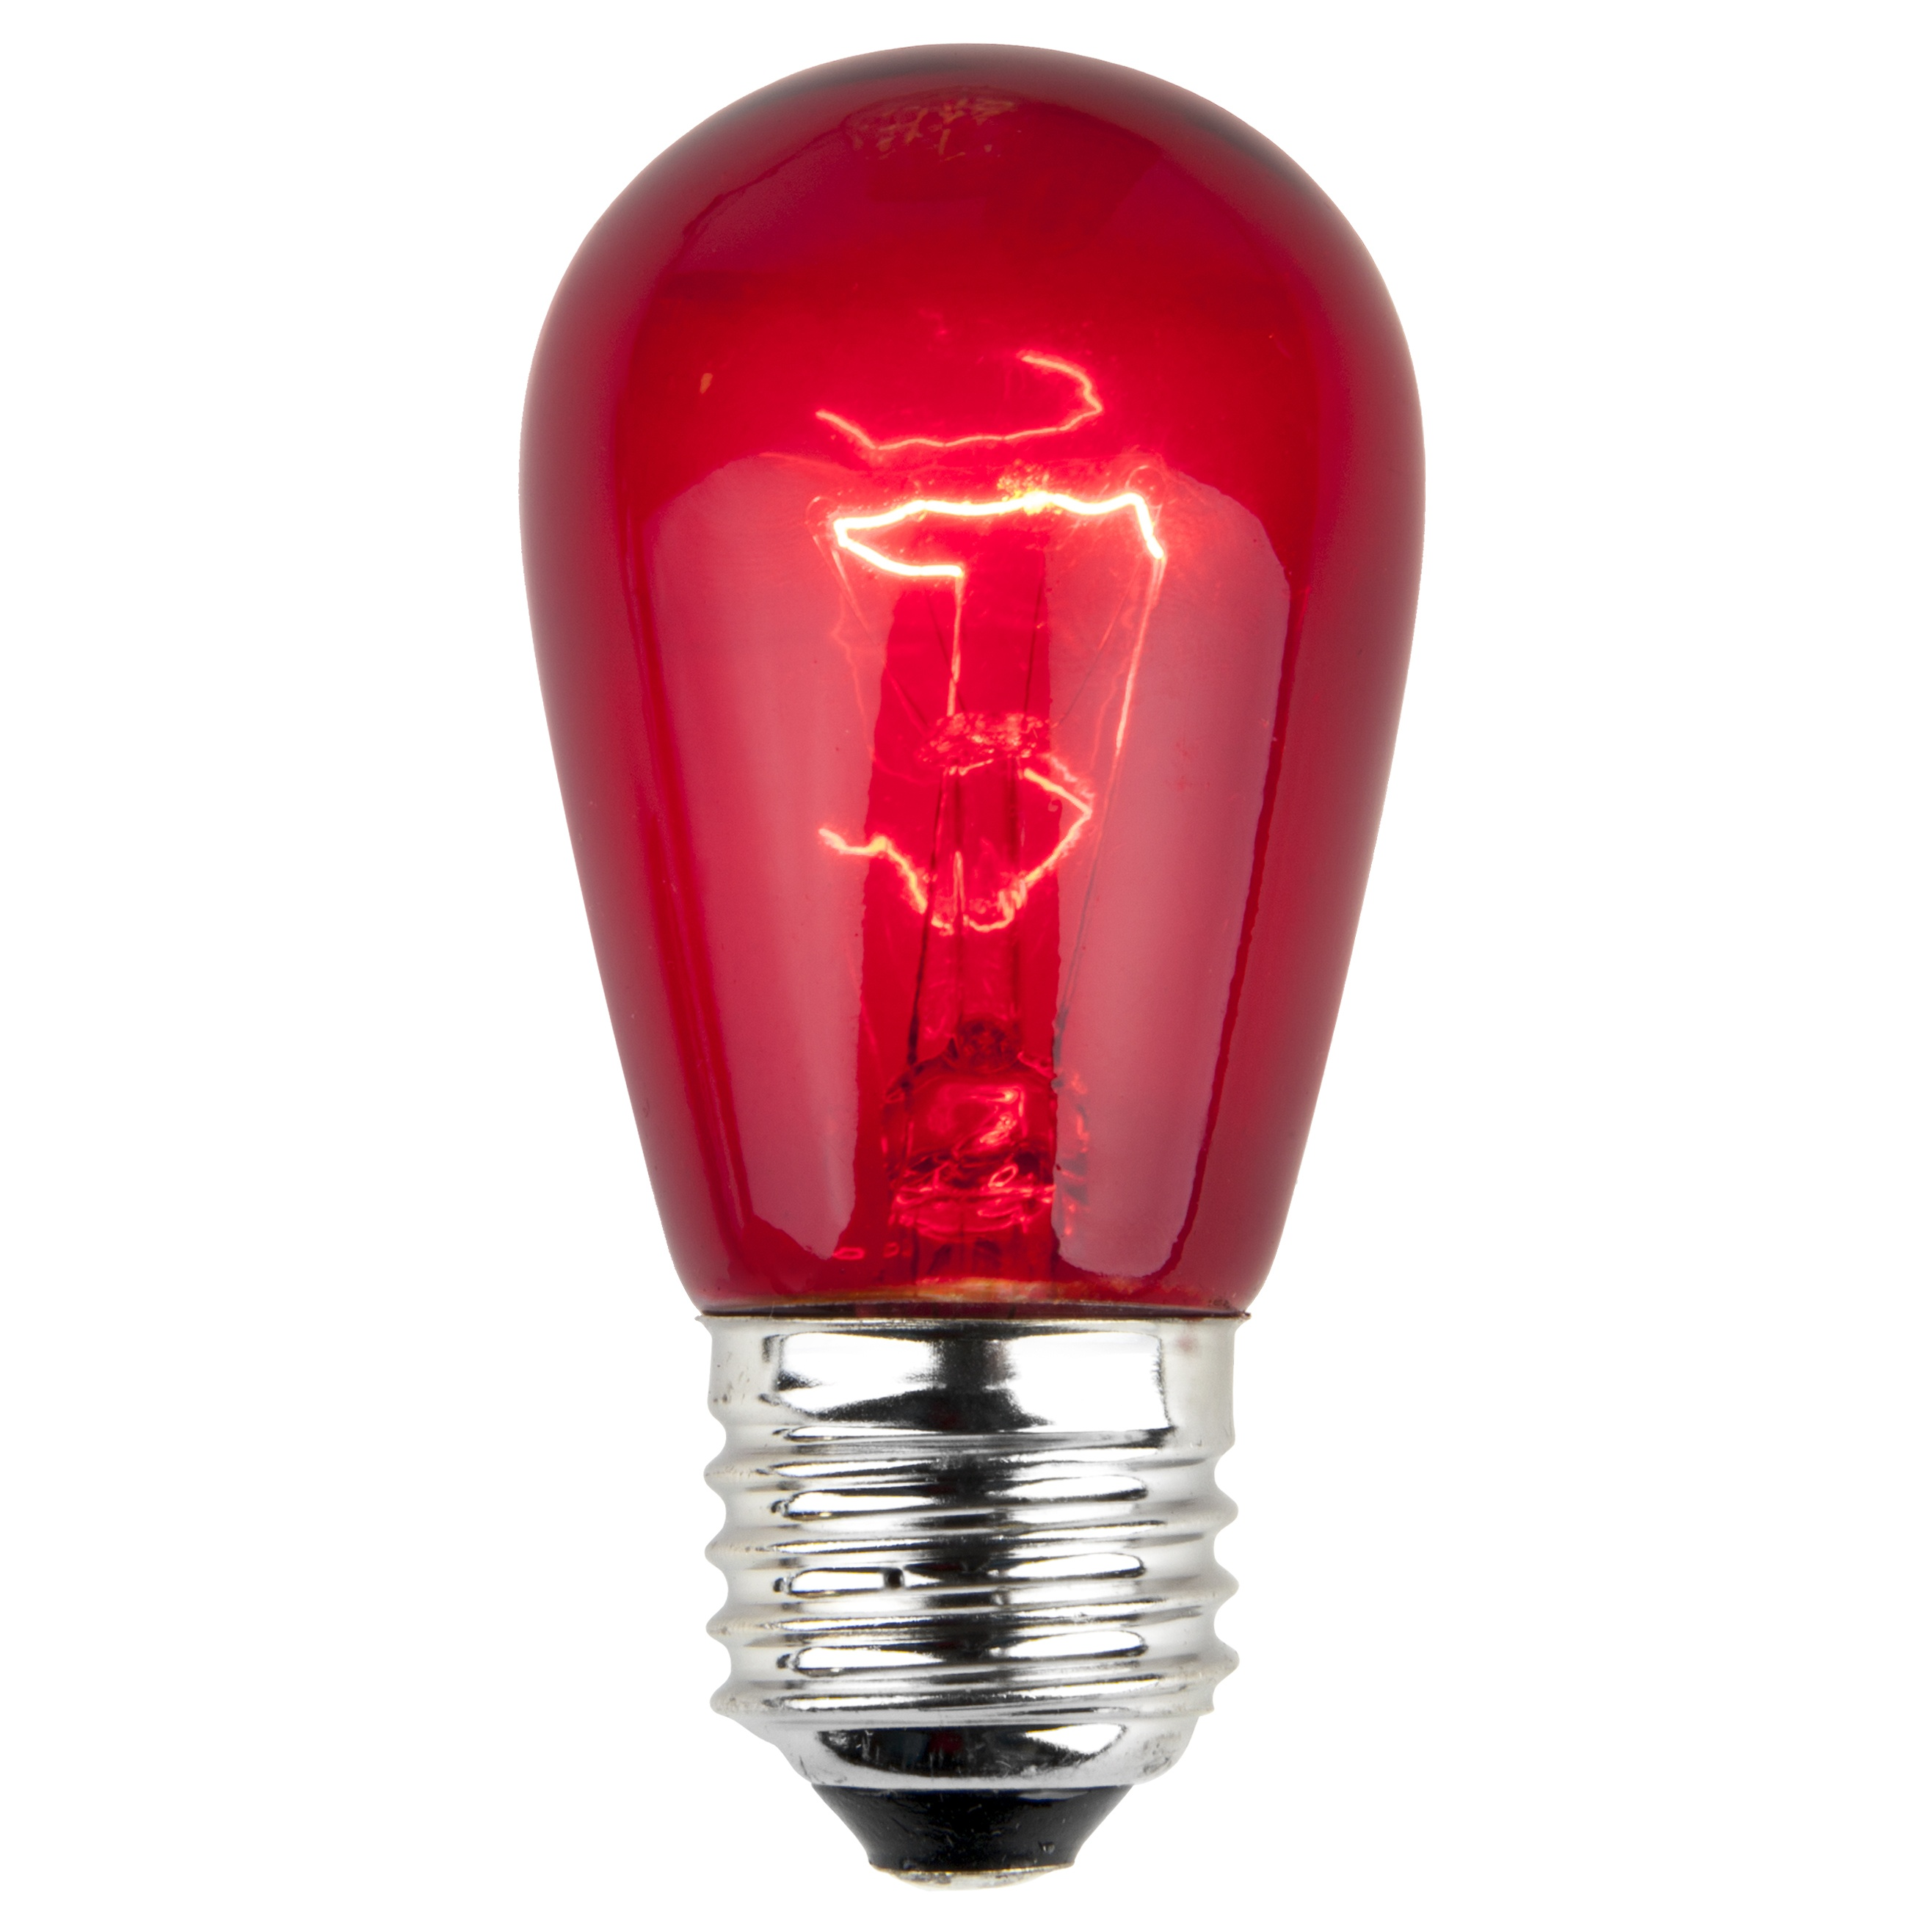 11S14 Transparent Red Incandescent Sign Lamp